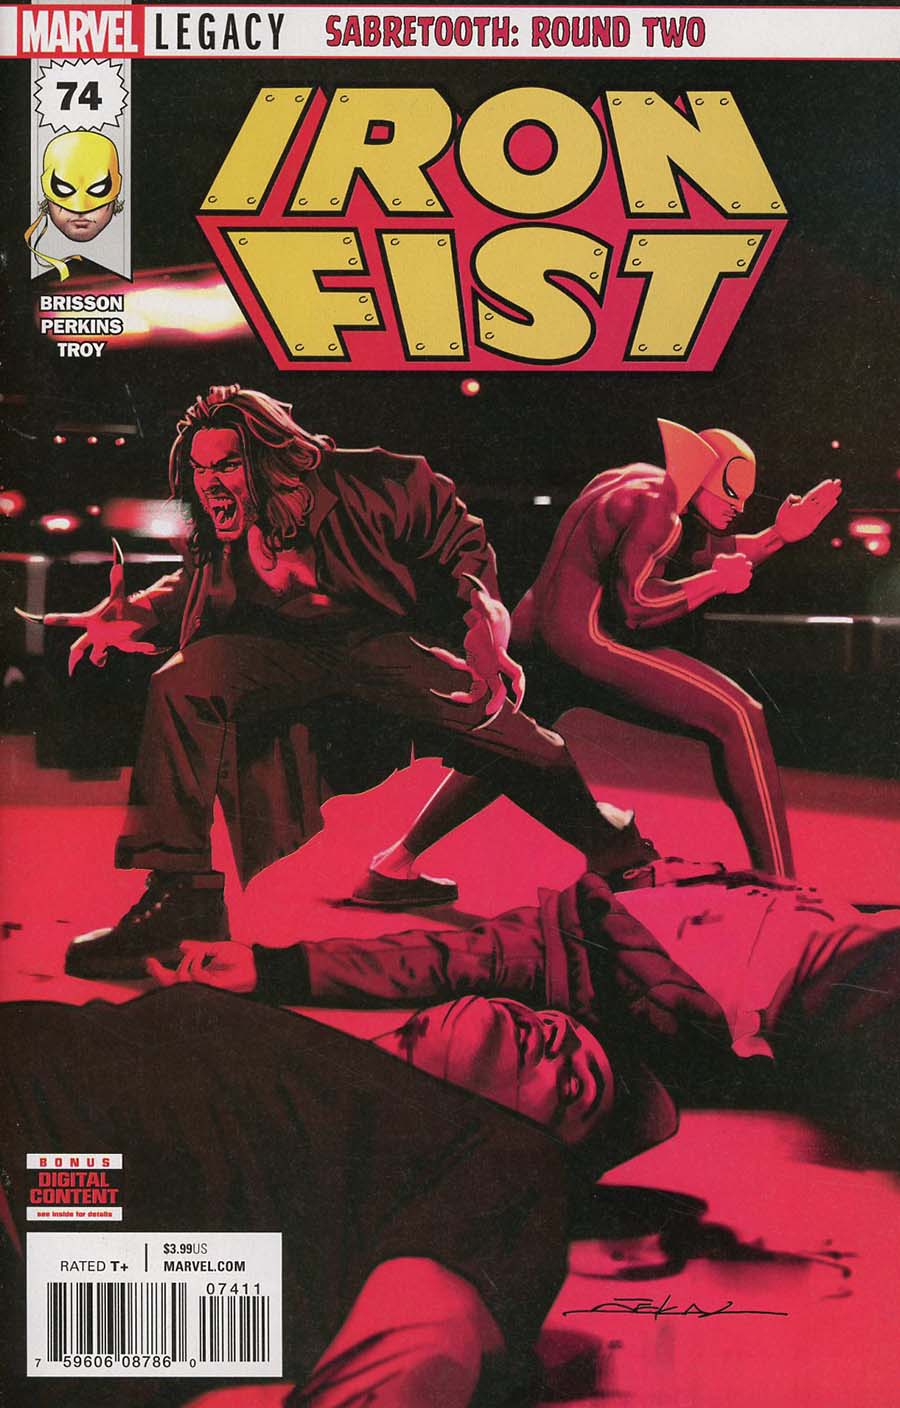 Iron Fist Vol 5 #74 Cover A 1st Ptg (Marvel Legacy Tie-In)